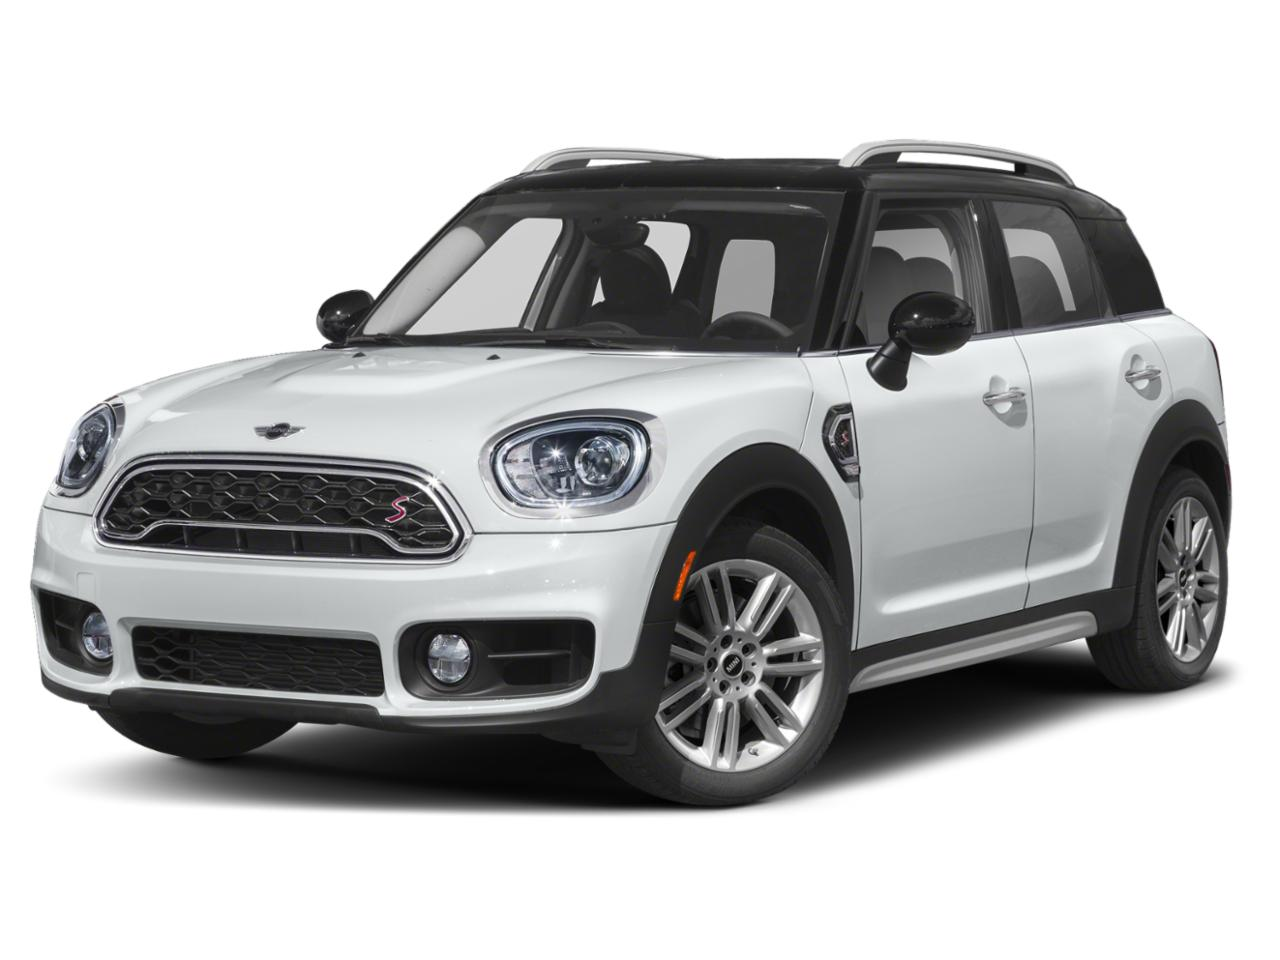 2020 MINI Cooper S Countryman Vehicle Photo in Arlington, TX 76011